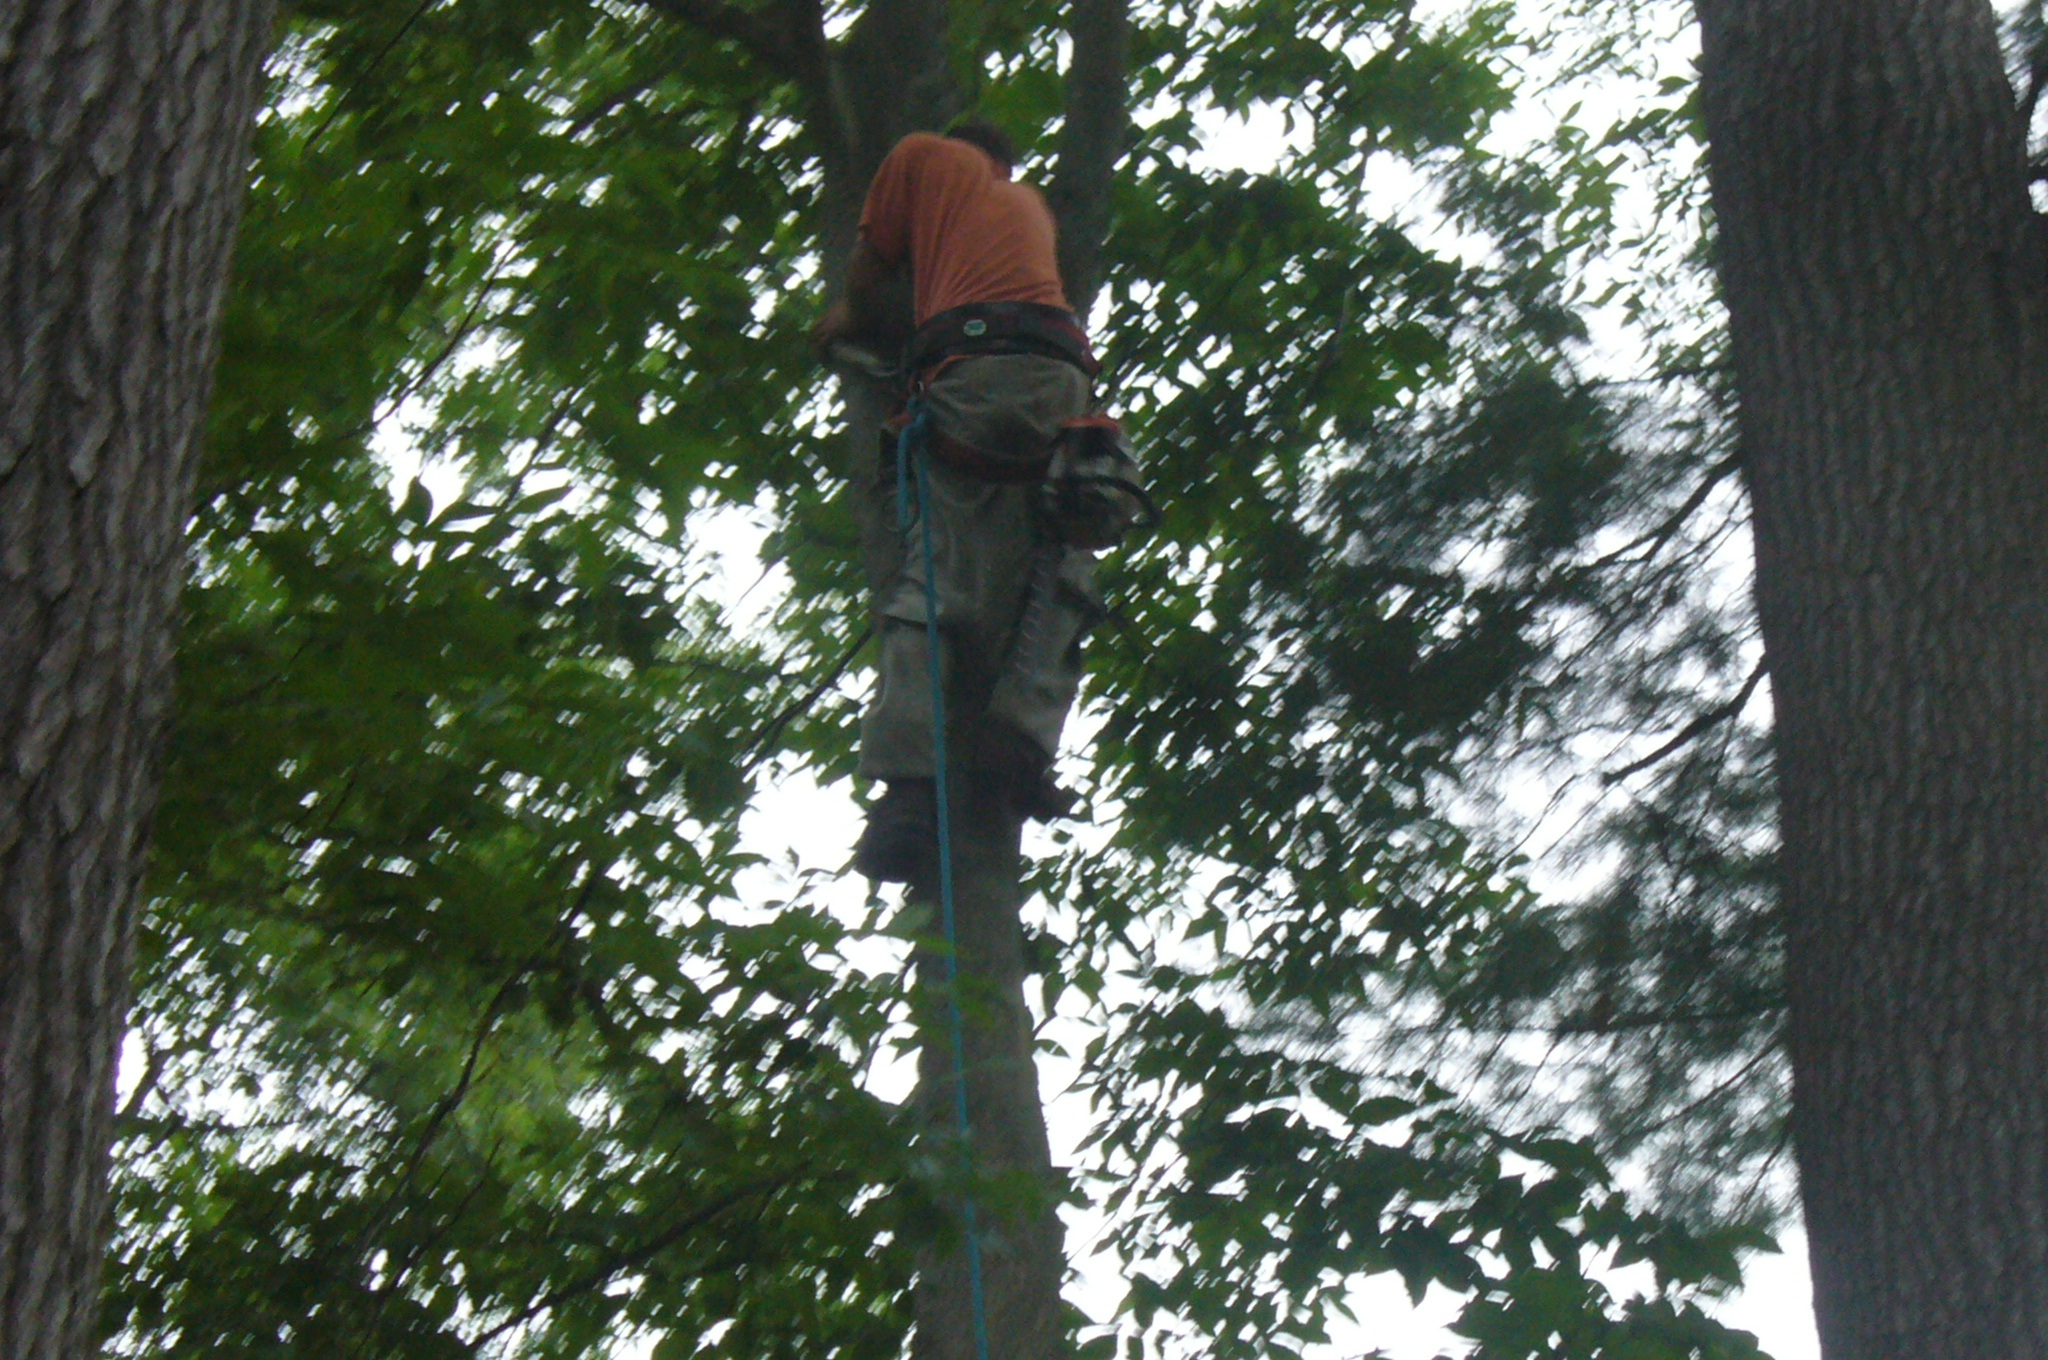 Trimming another tree